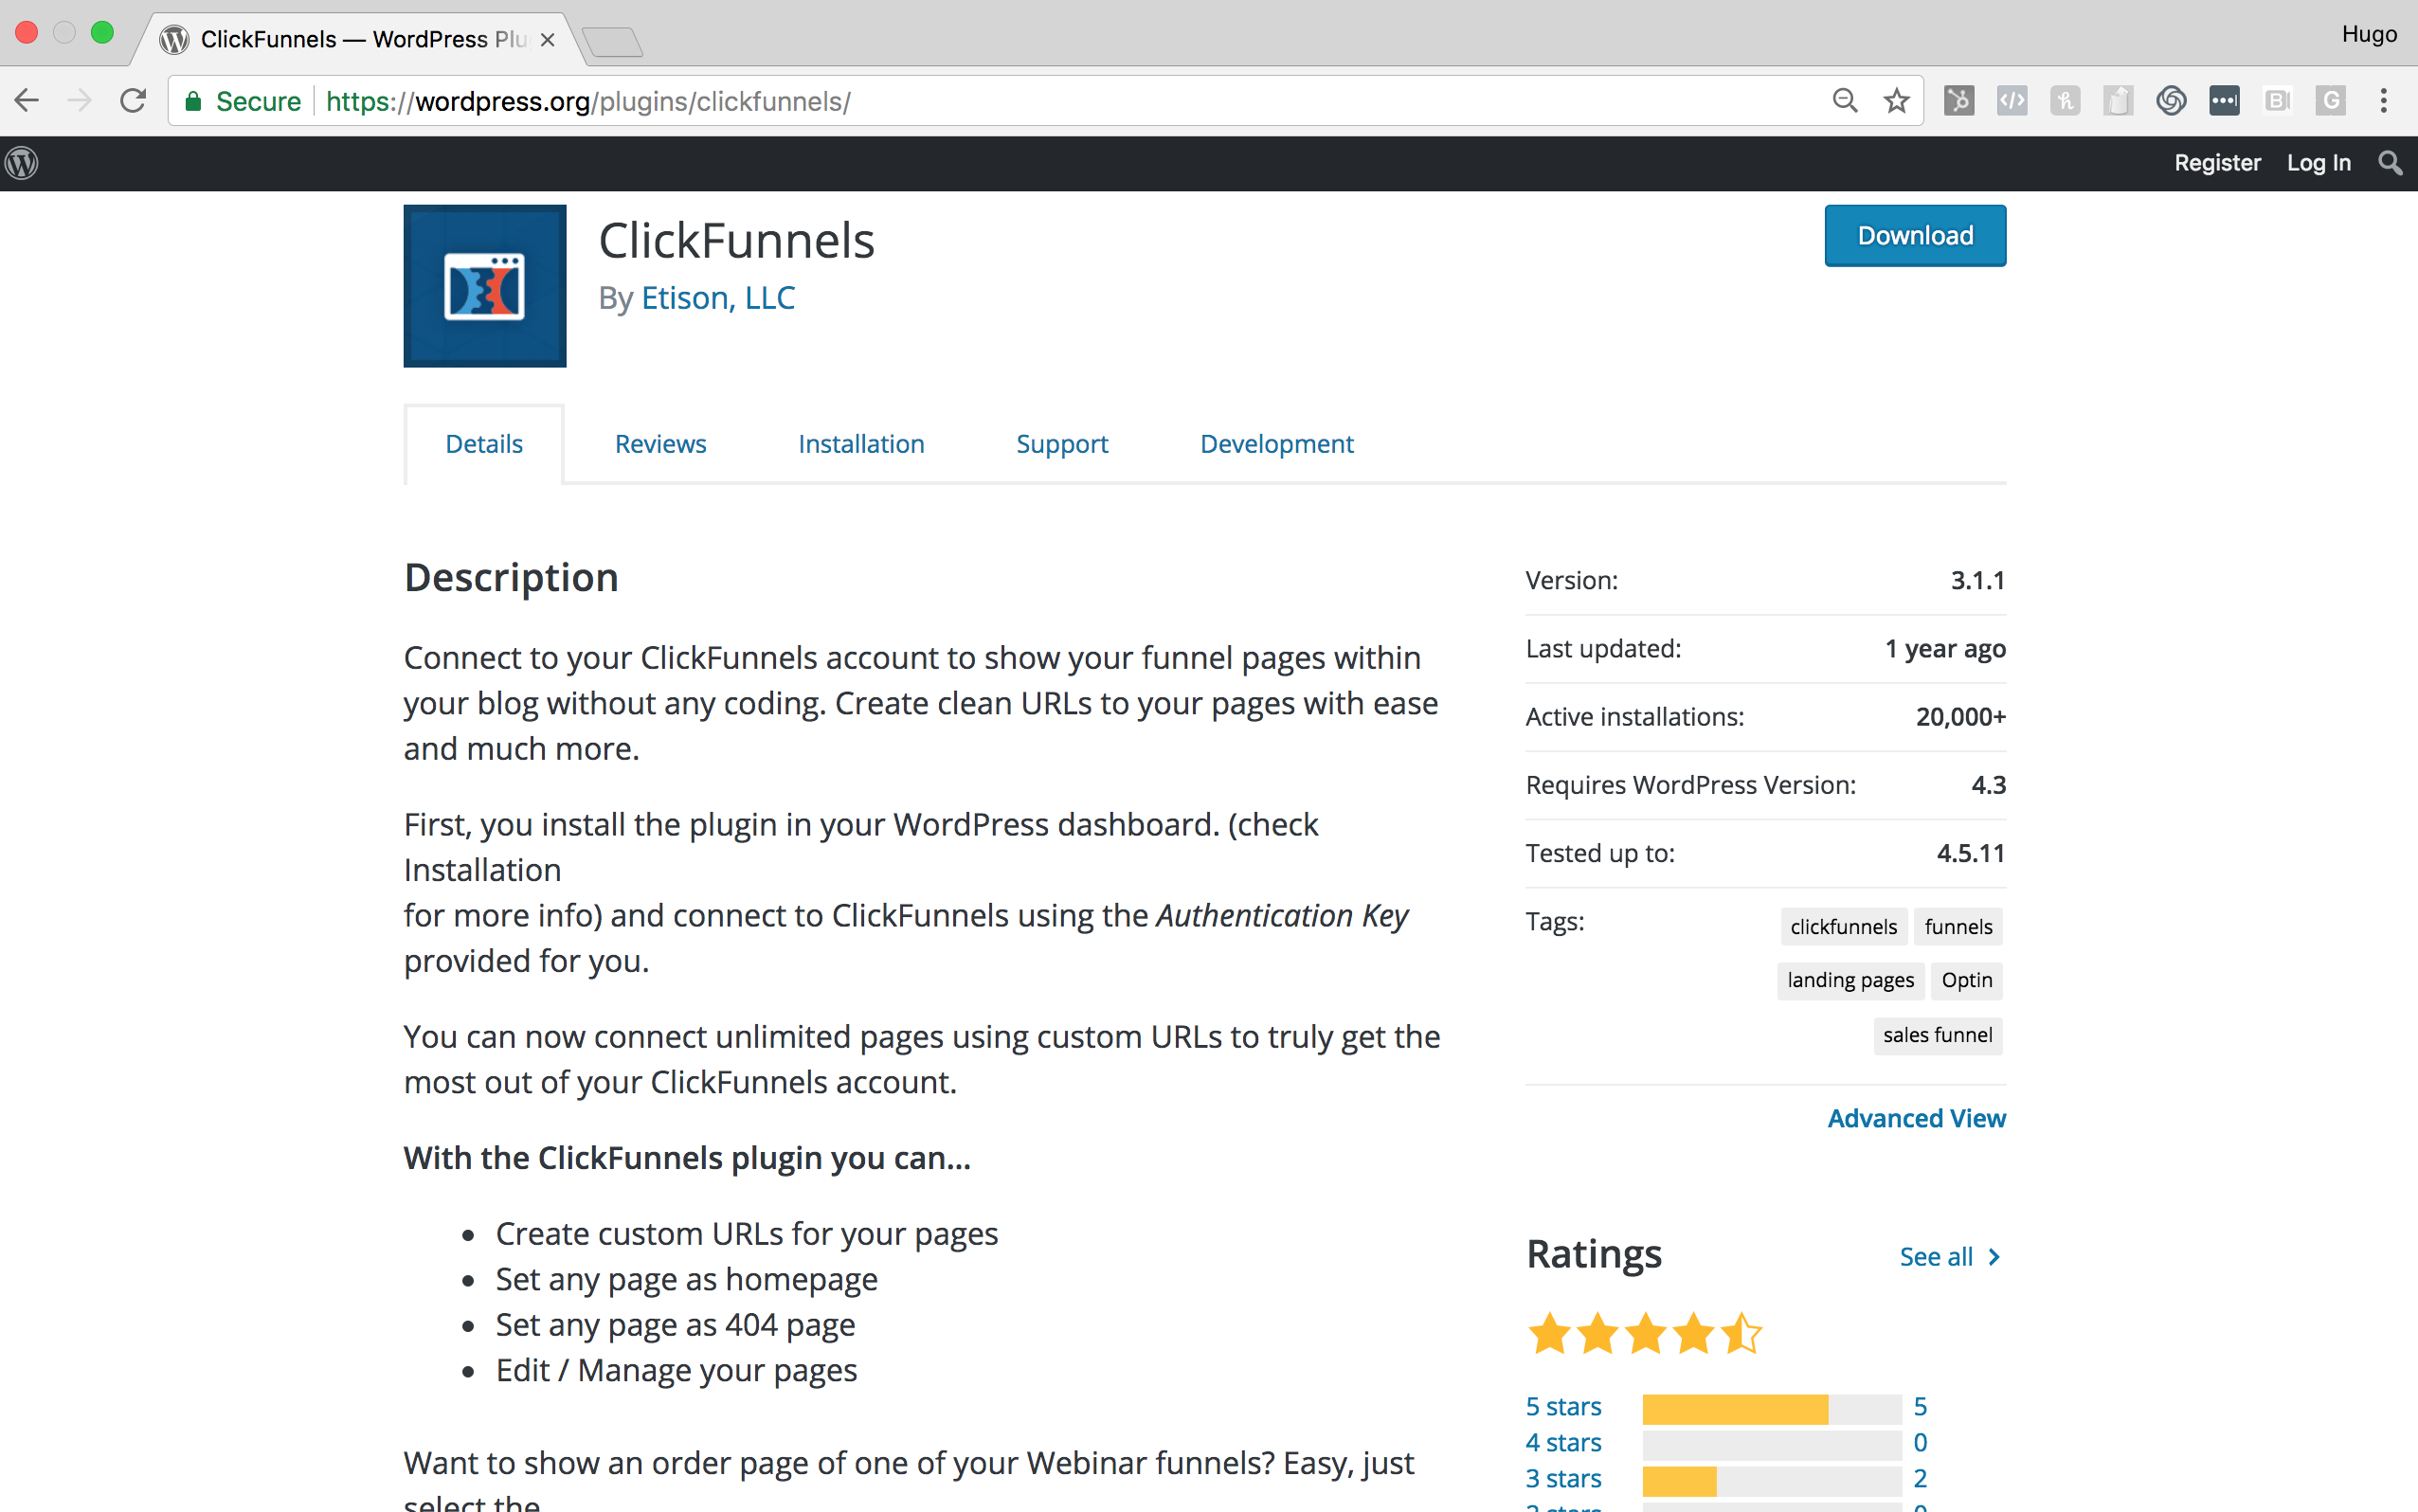 How To Change The Flaivon On A Clickfunnels